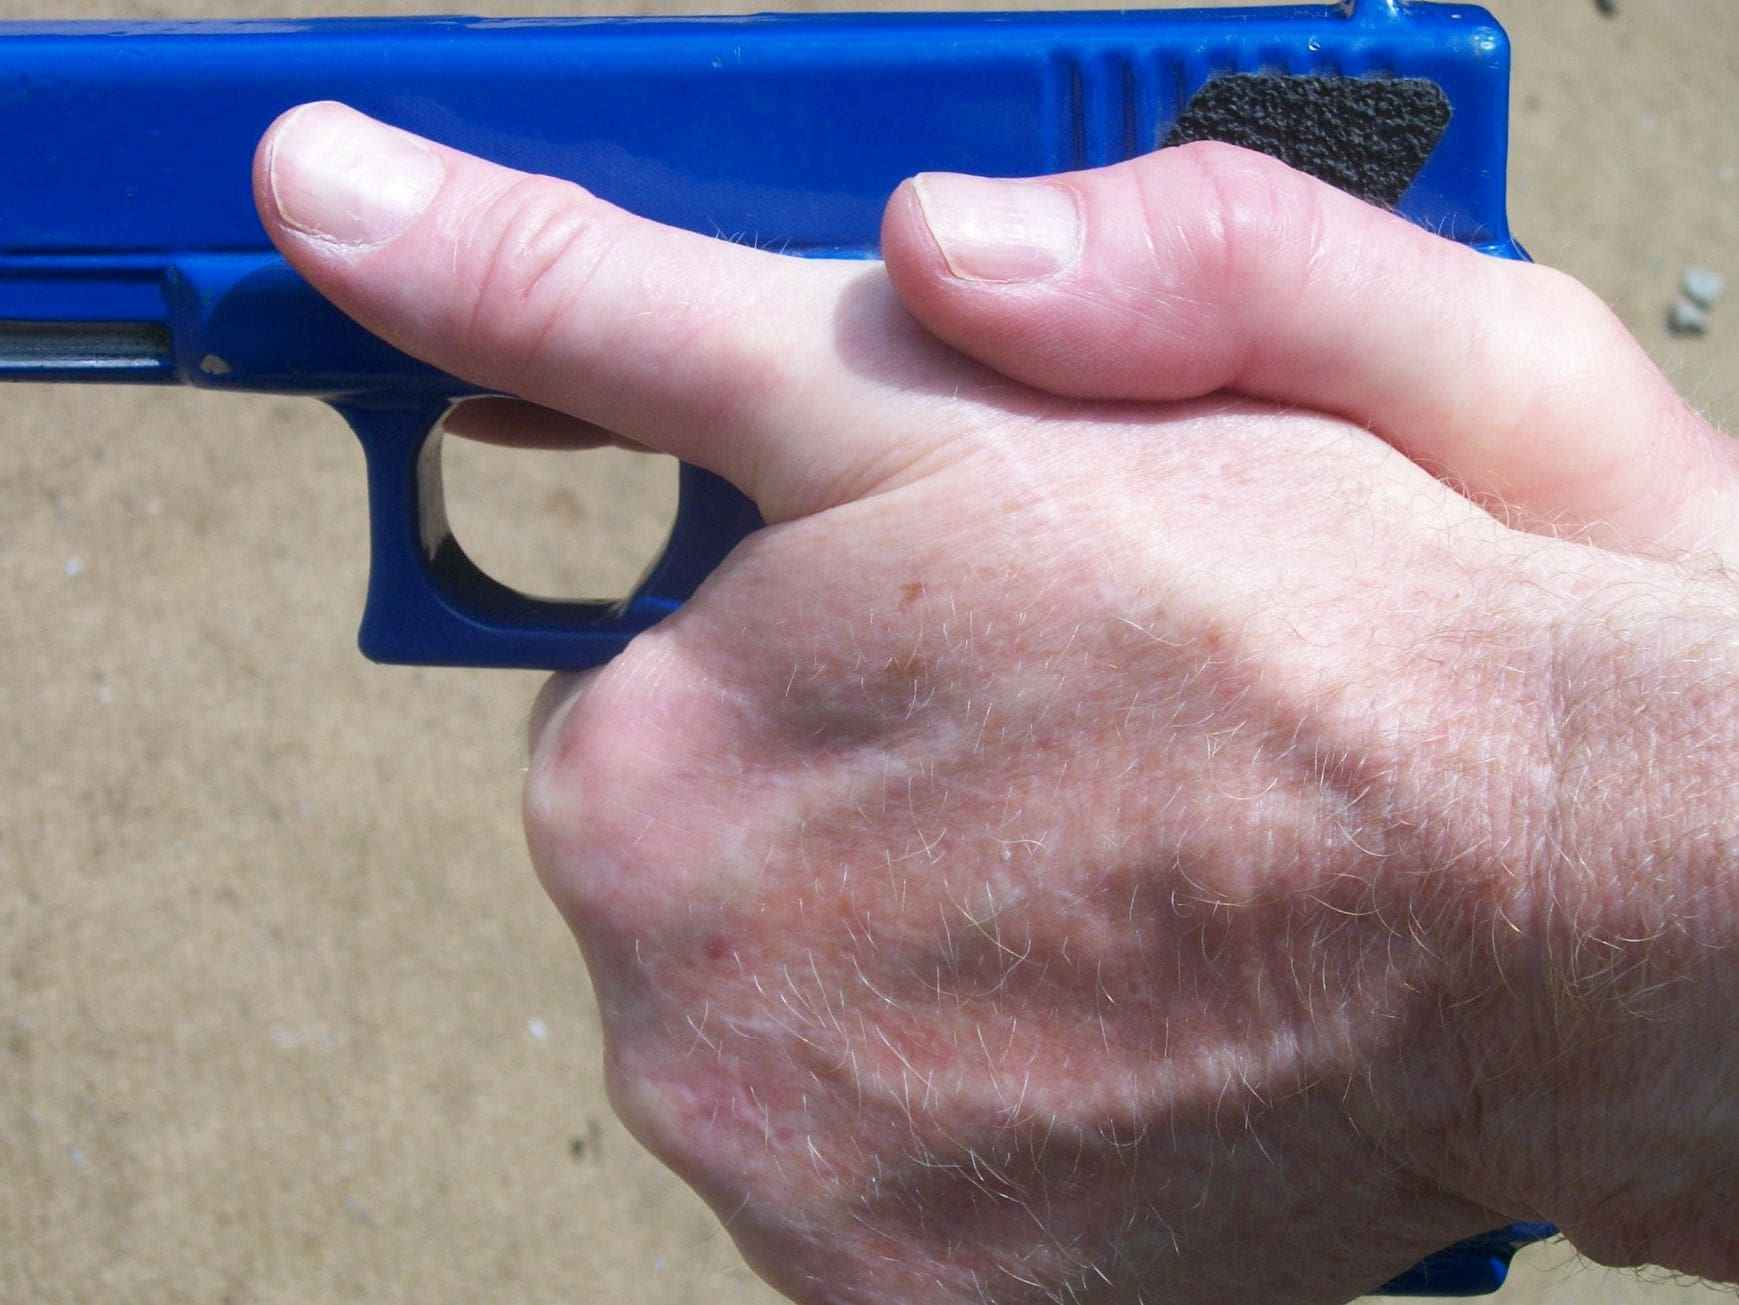 Properly Gripping an Autoloading Pistol